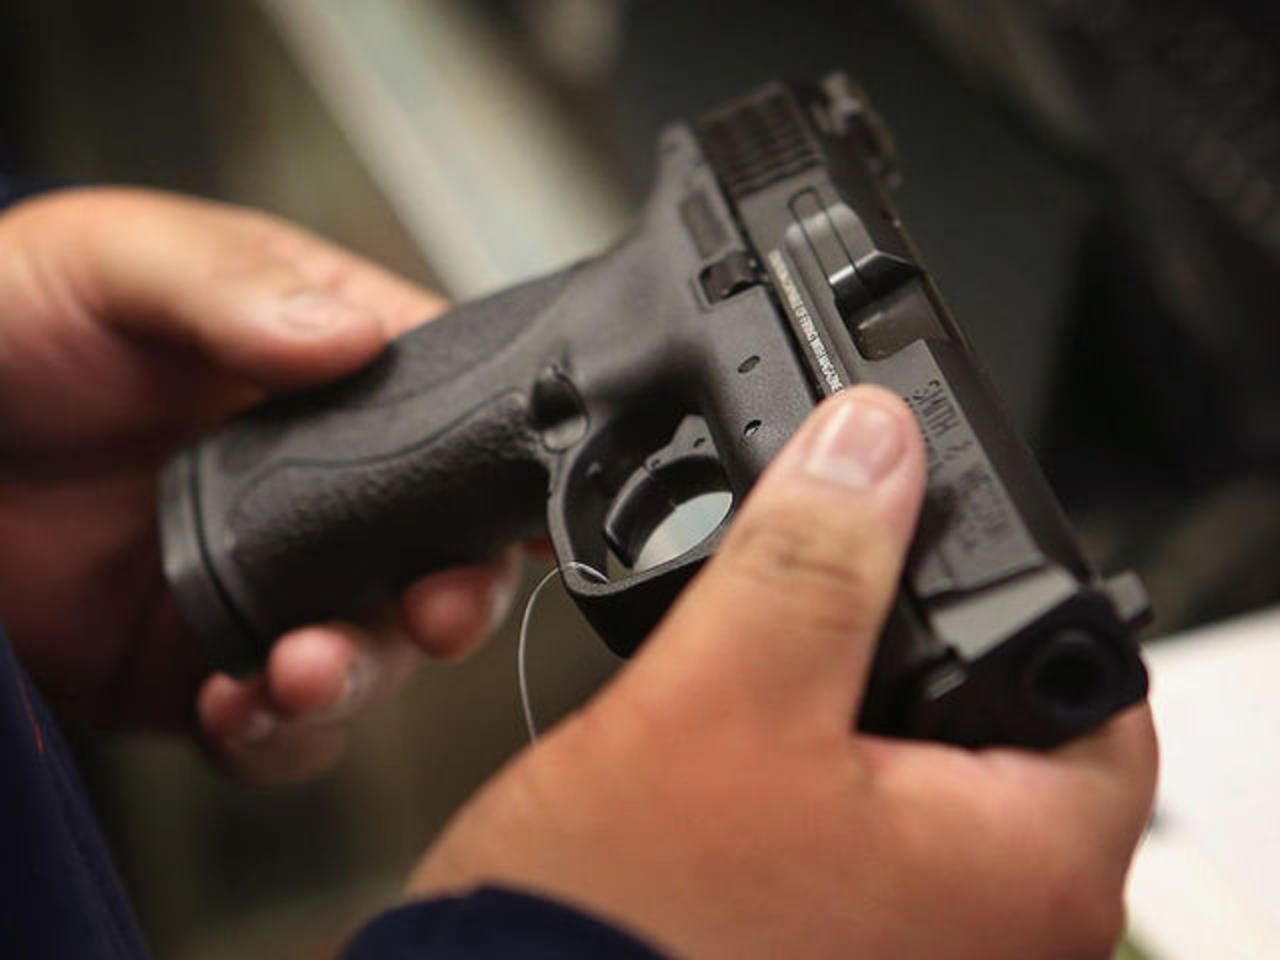 City leaders say children injured, killed by guns in the home becoming a crisis